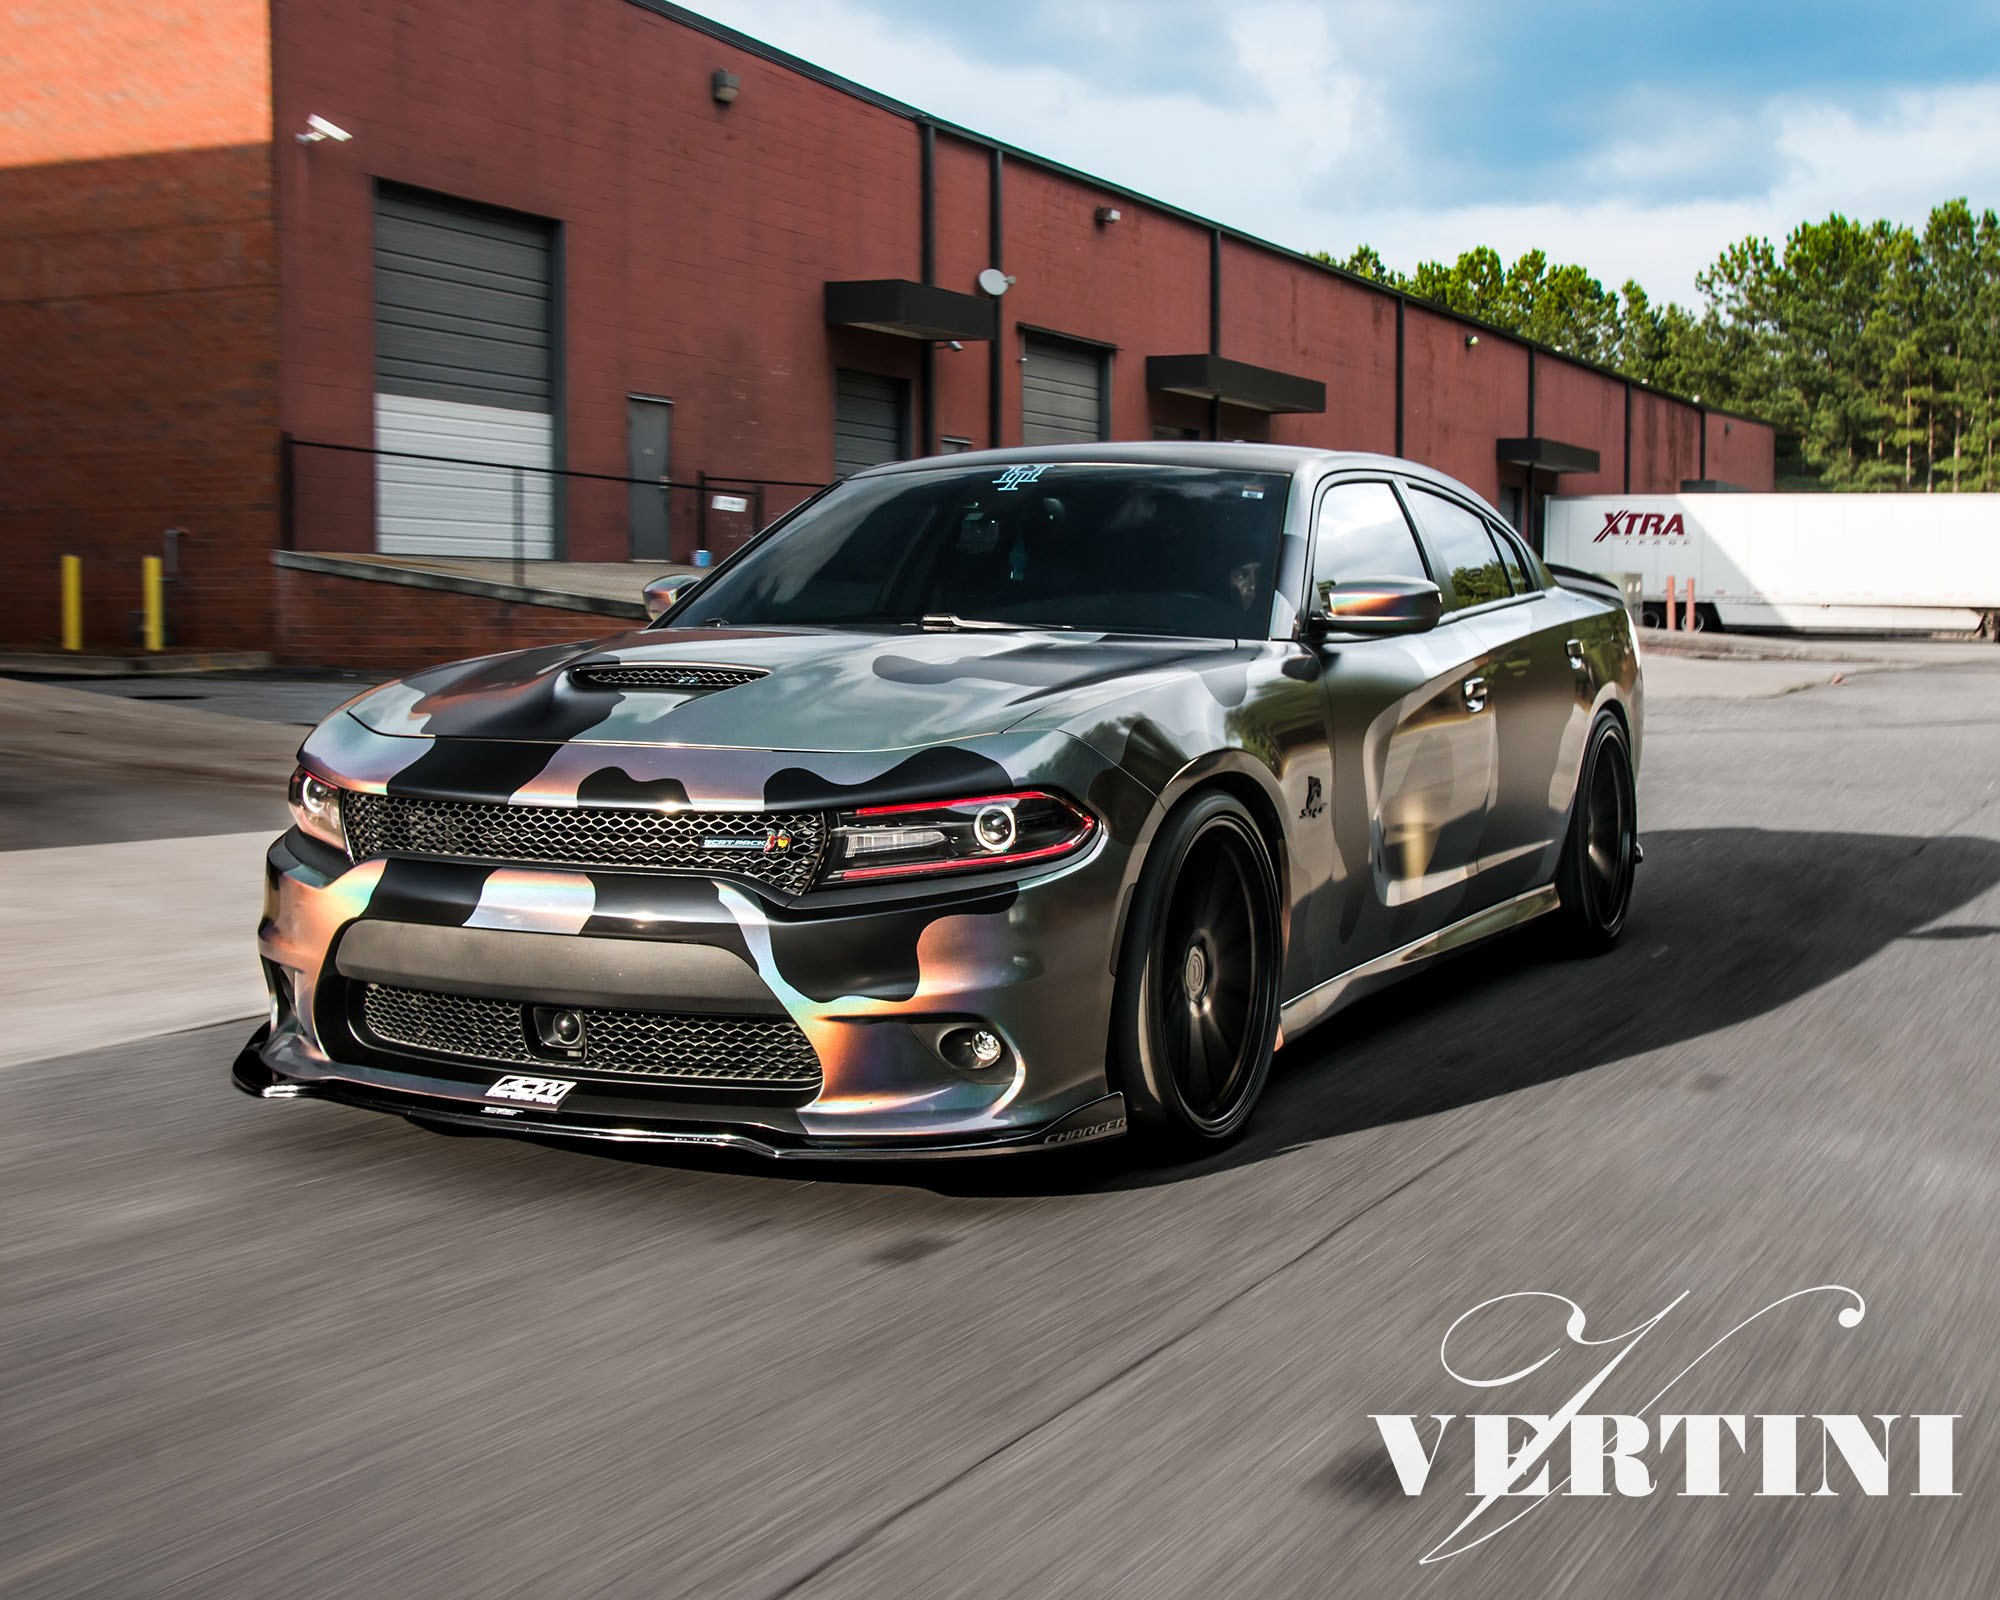 Red Led Accents And Camo Wrap For Racy Dodge Charger Styling Carid Com Gallery